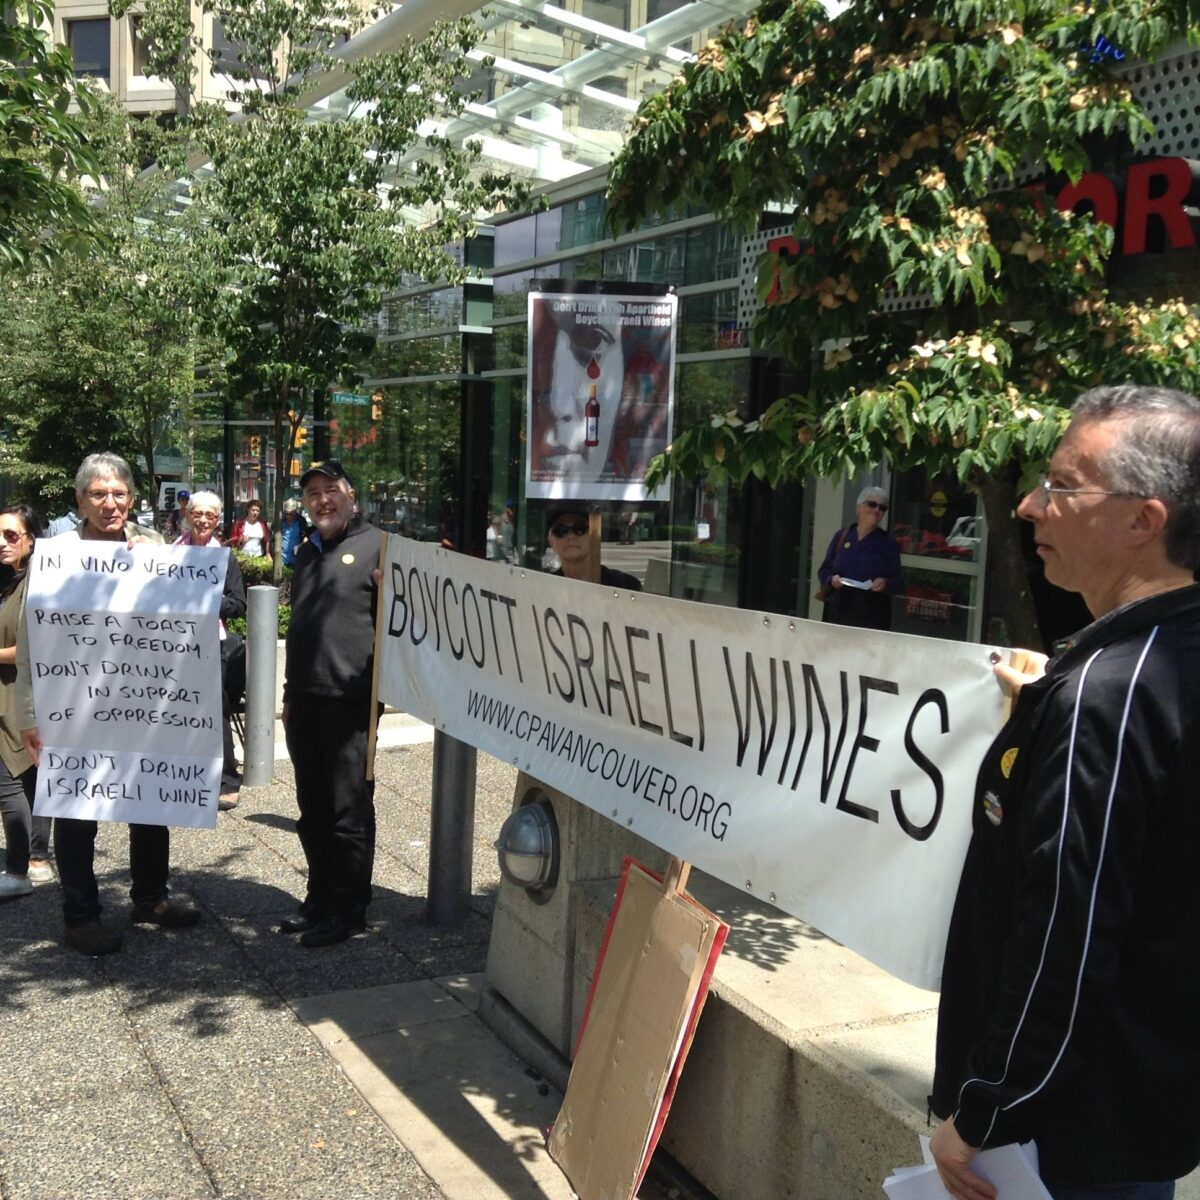 Open Letter : Time to respect NDP Policy, Don't make B.C. complicit in Israeli war crimes!